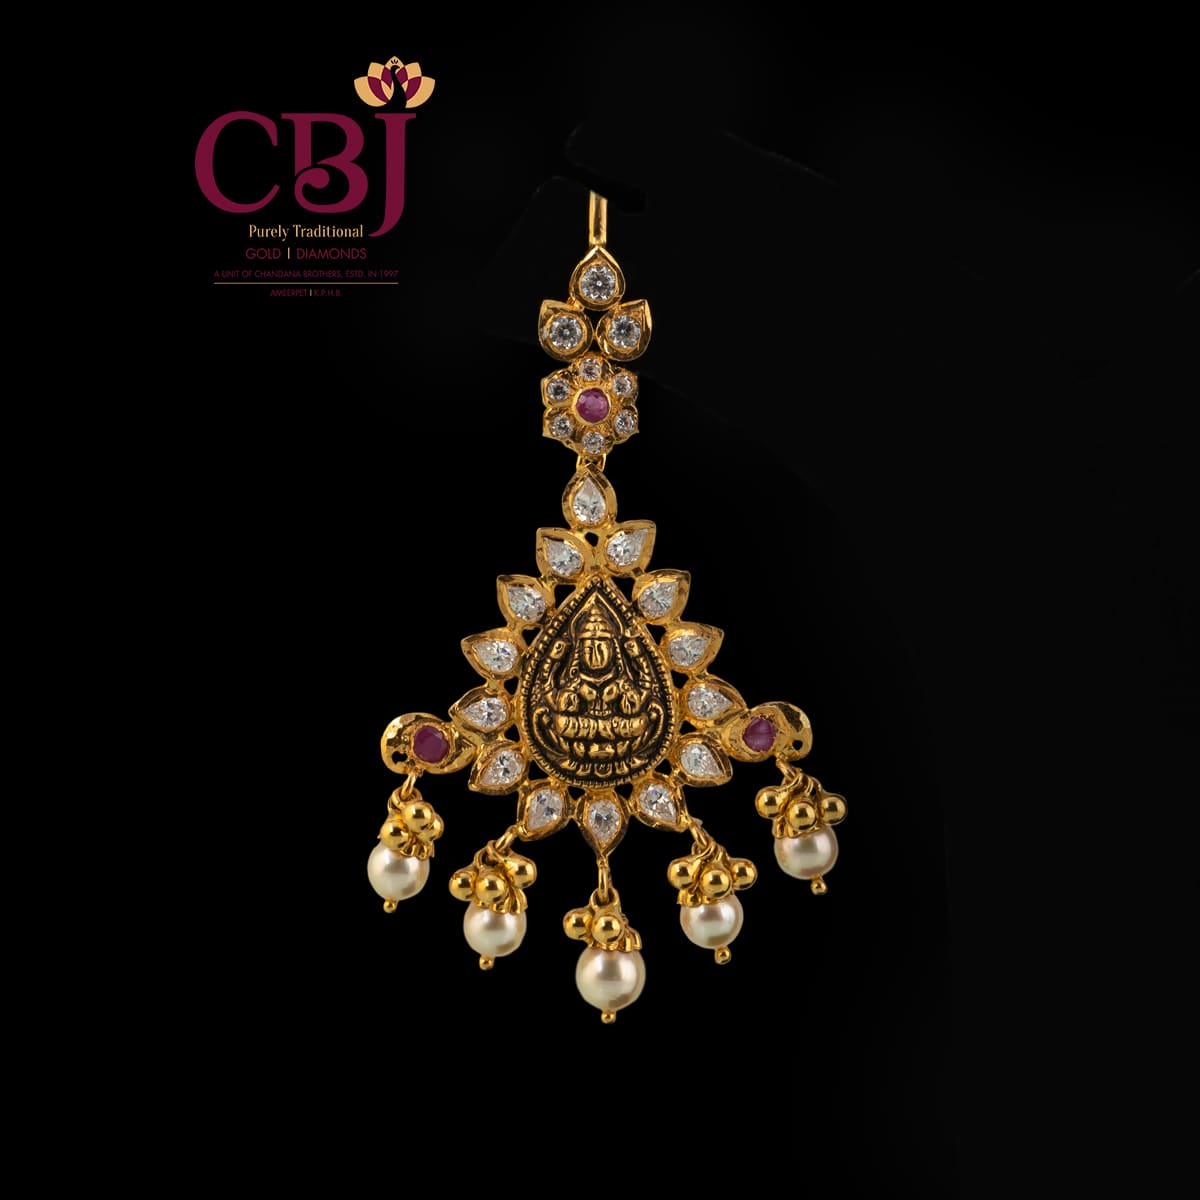 A unique maang tikka with an understated antique design featuring traditional elements.